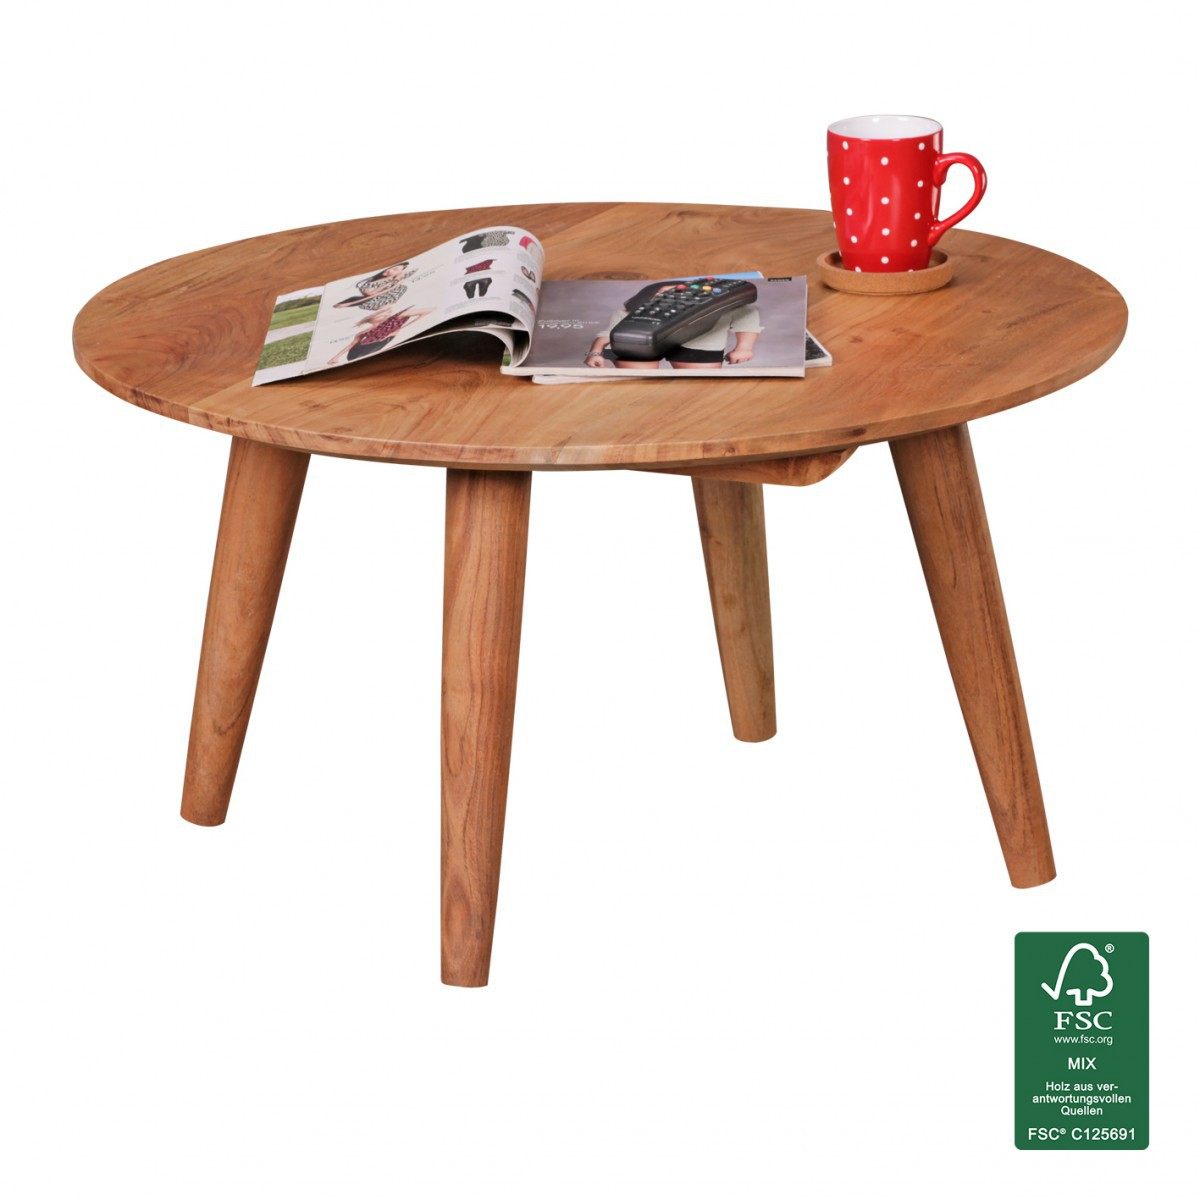 Finebuy table basse en bois massif acacia table basse - Table basse ronde metal ...